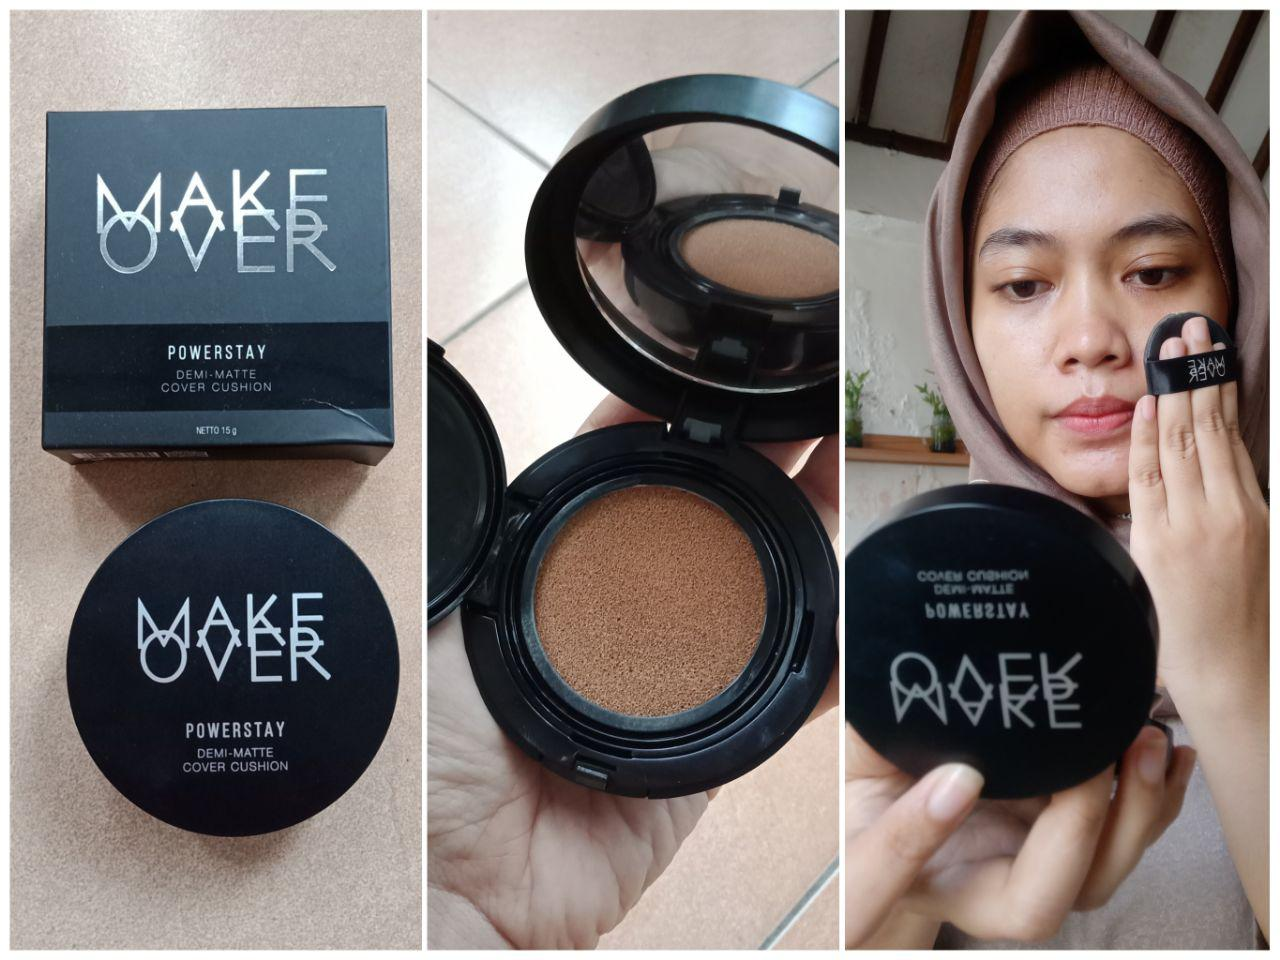 Review Wear Test Make Over Powerstay Demi Matte Cover Cushion